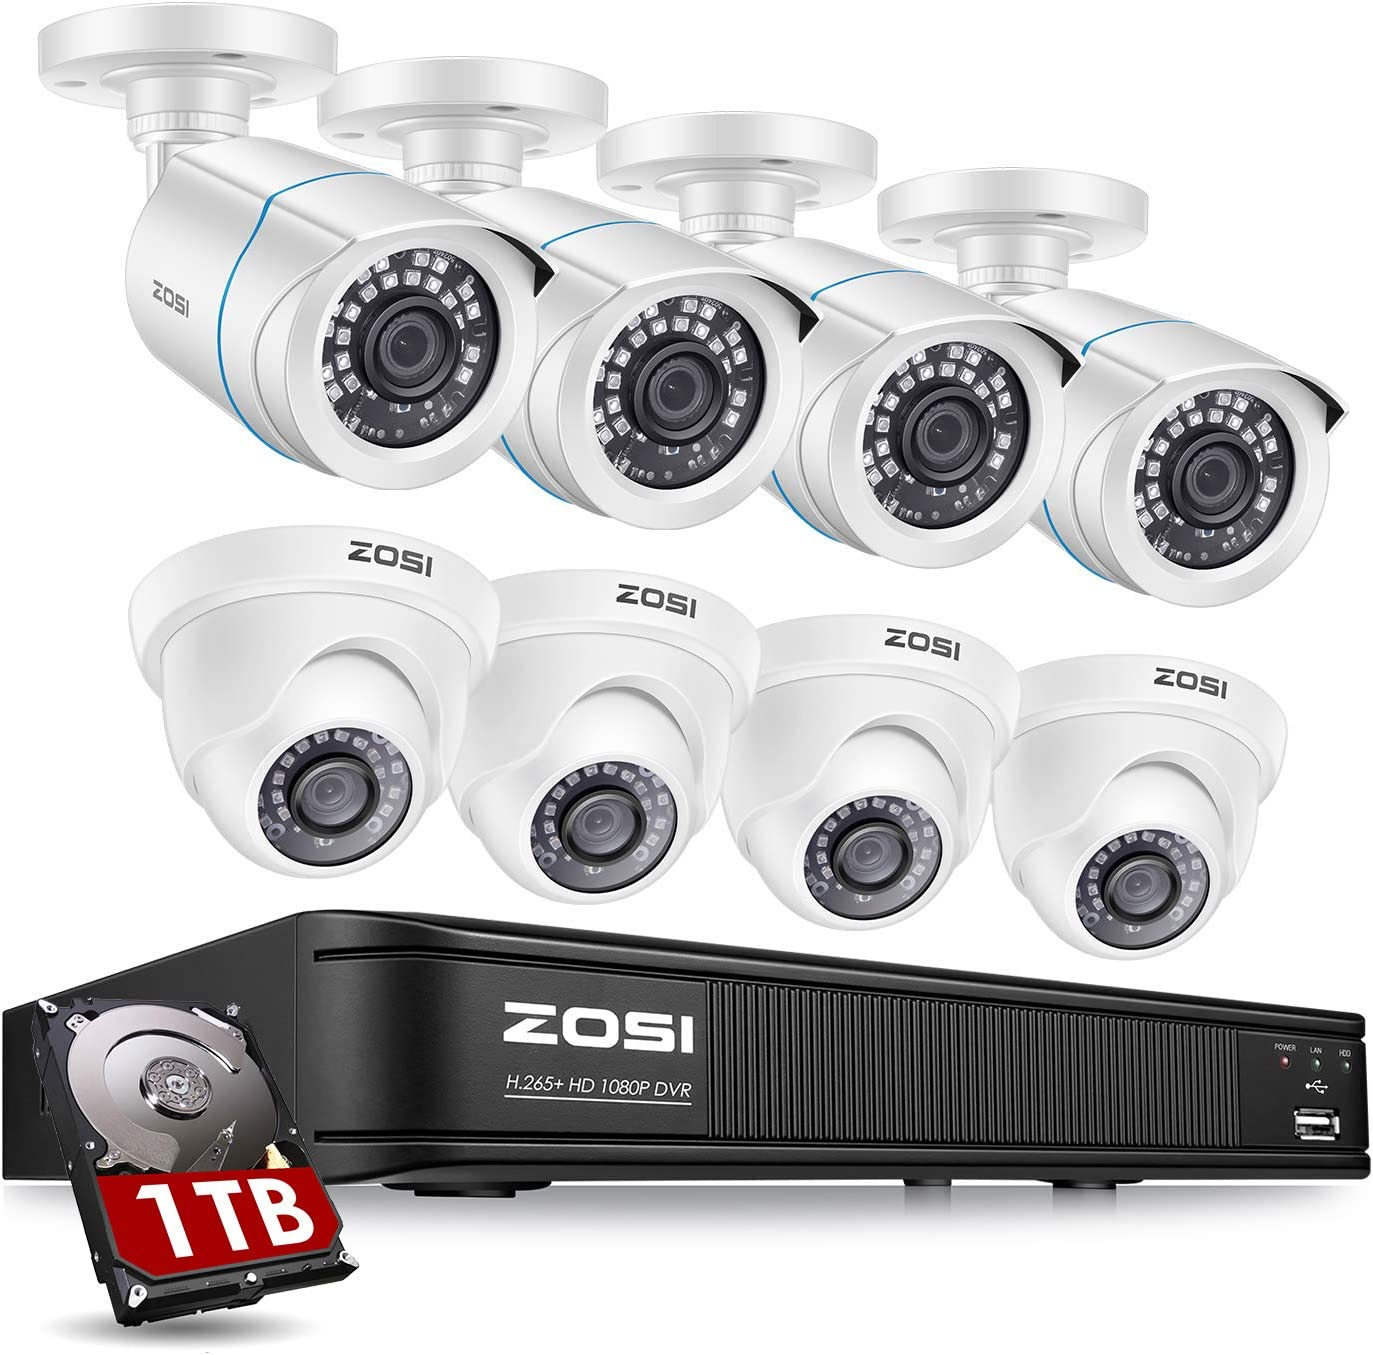 ZOSI H.265+ 1080p Home Security Camera System Outdoor Indoor, 5MP Lite 8 Channel DVR Recorder and 8 x 1080p Weatherproof CCTV Bullet Dome Camera, Remote Access, Motion Alerts (1TB Hard Drive Built-in)